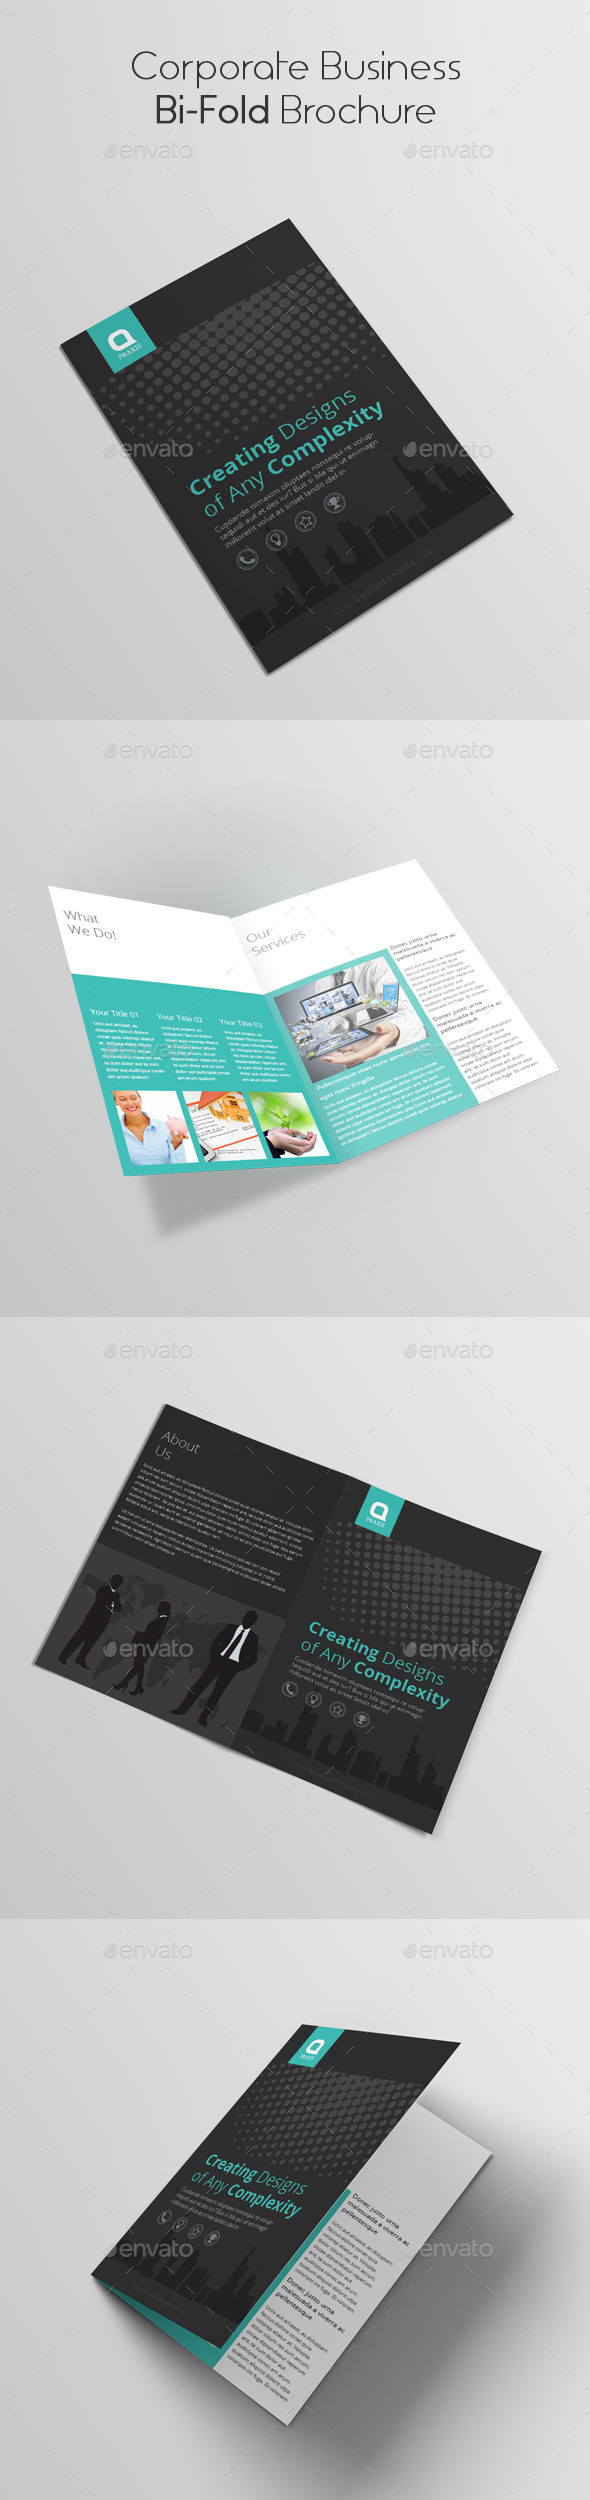 GraphicRiver Corporate Business Bi-Fold Brochure 10649781